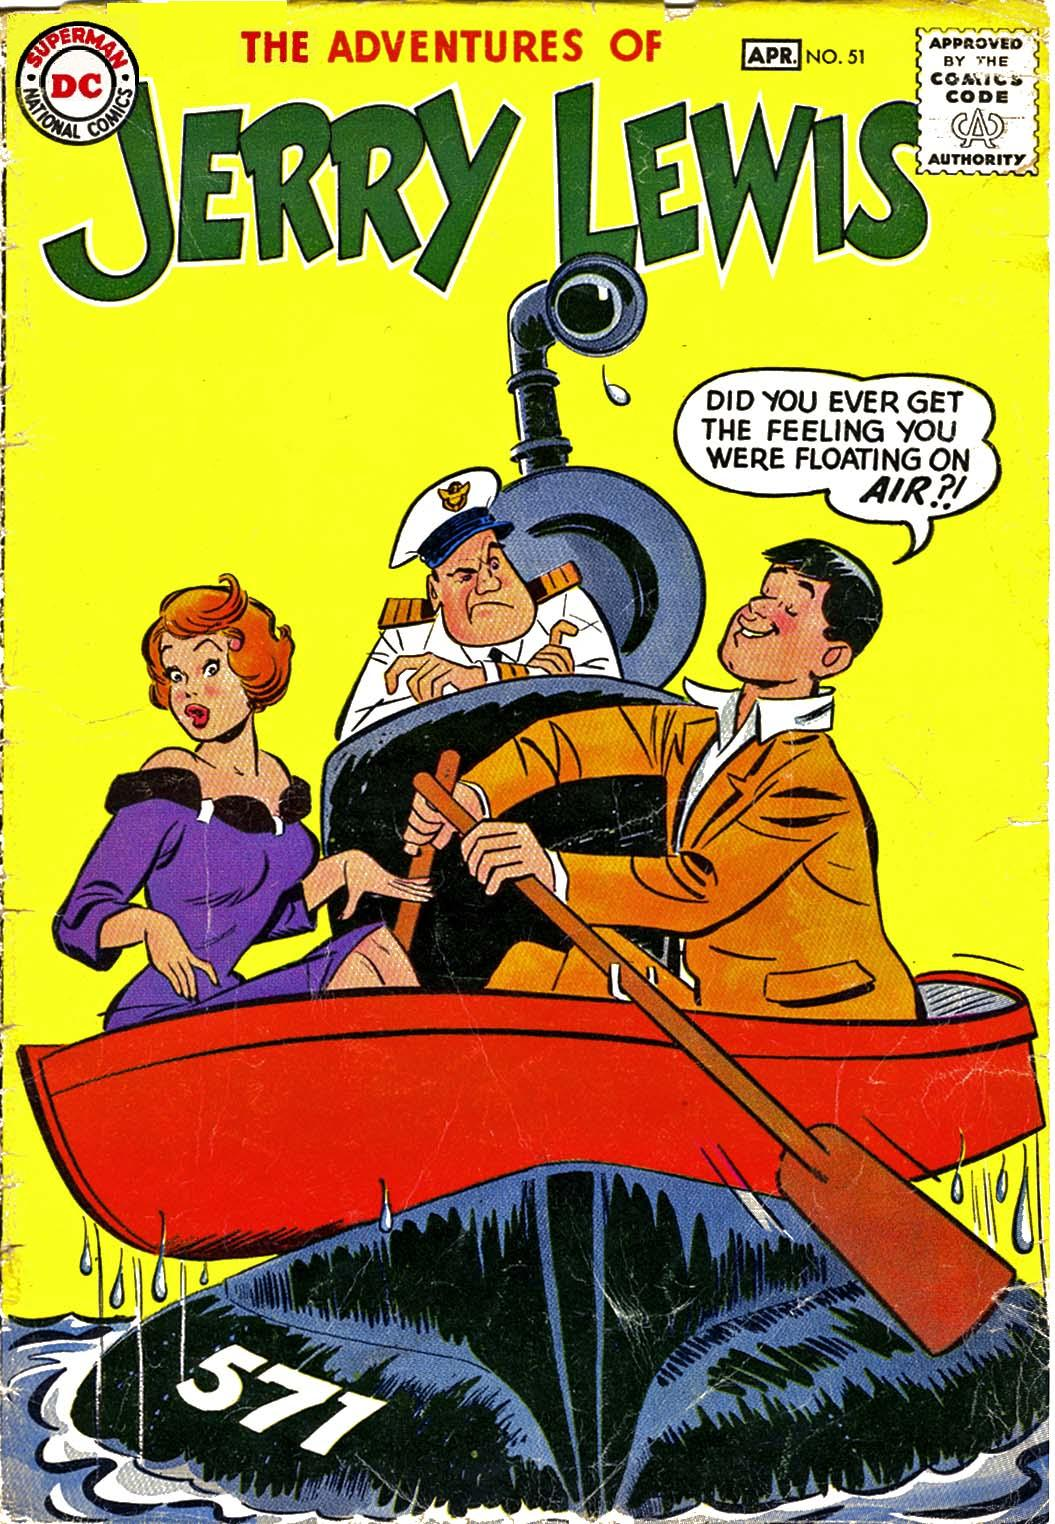 The Adventures of Jerry Lewis 51 Page 1